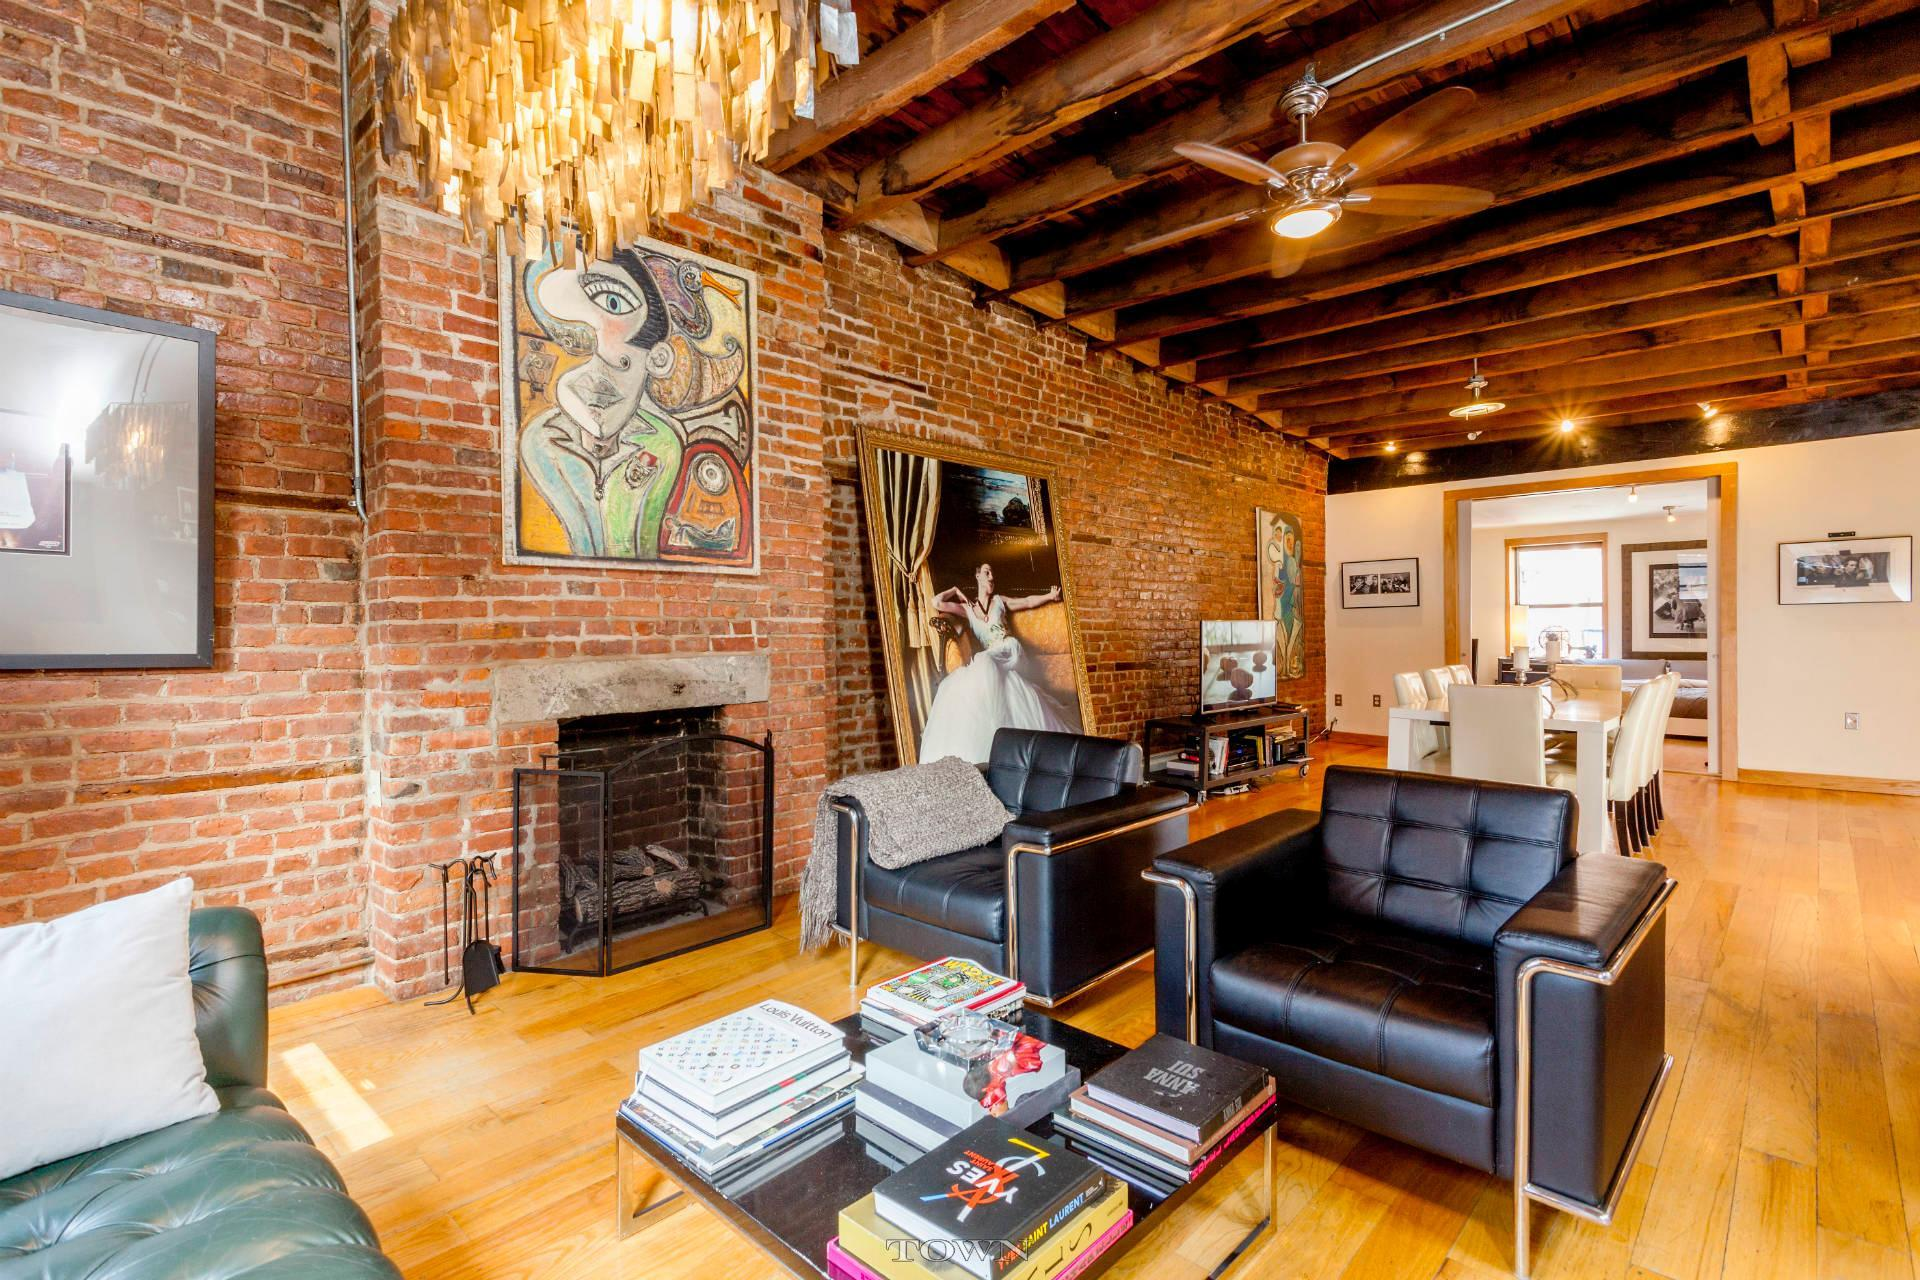 Apartment Style A 32 Foot Long Living Room With Exposed Brick Dominates